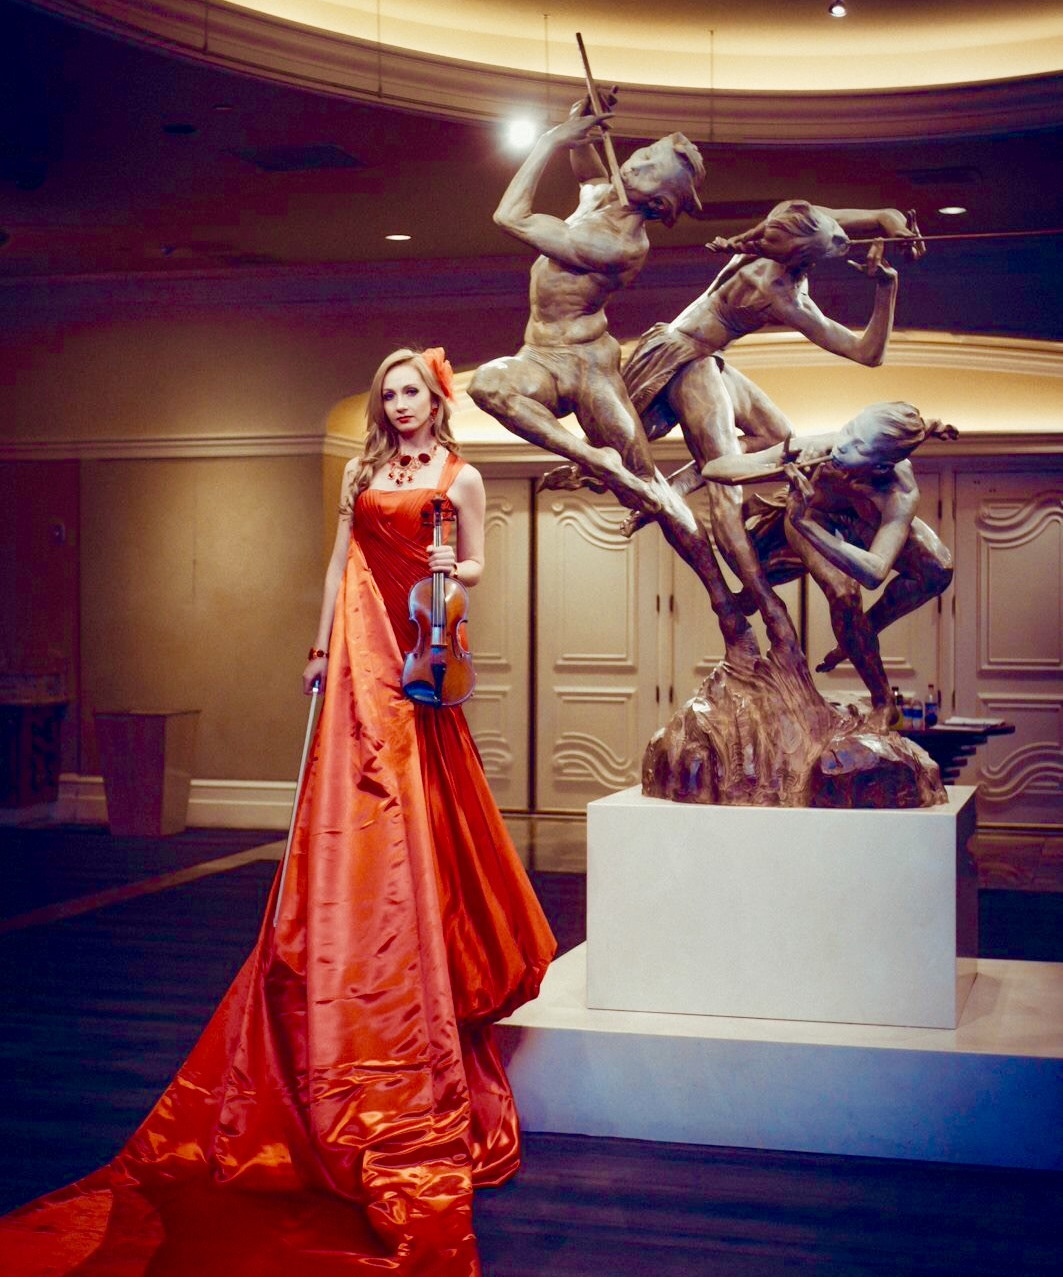 Aerial Artistry have created a unique experience for guests to walk on the red carpet before realising that it is part of a surreal, couture gown.